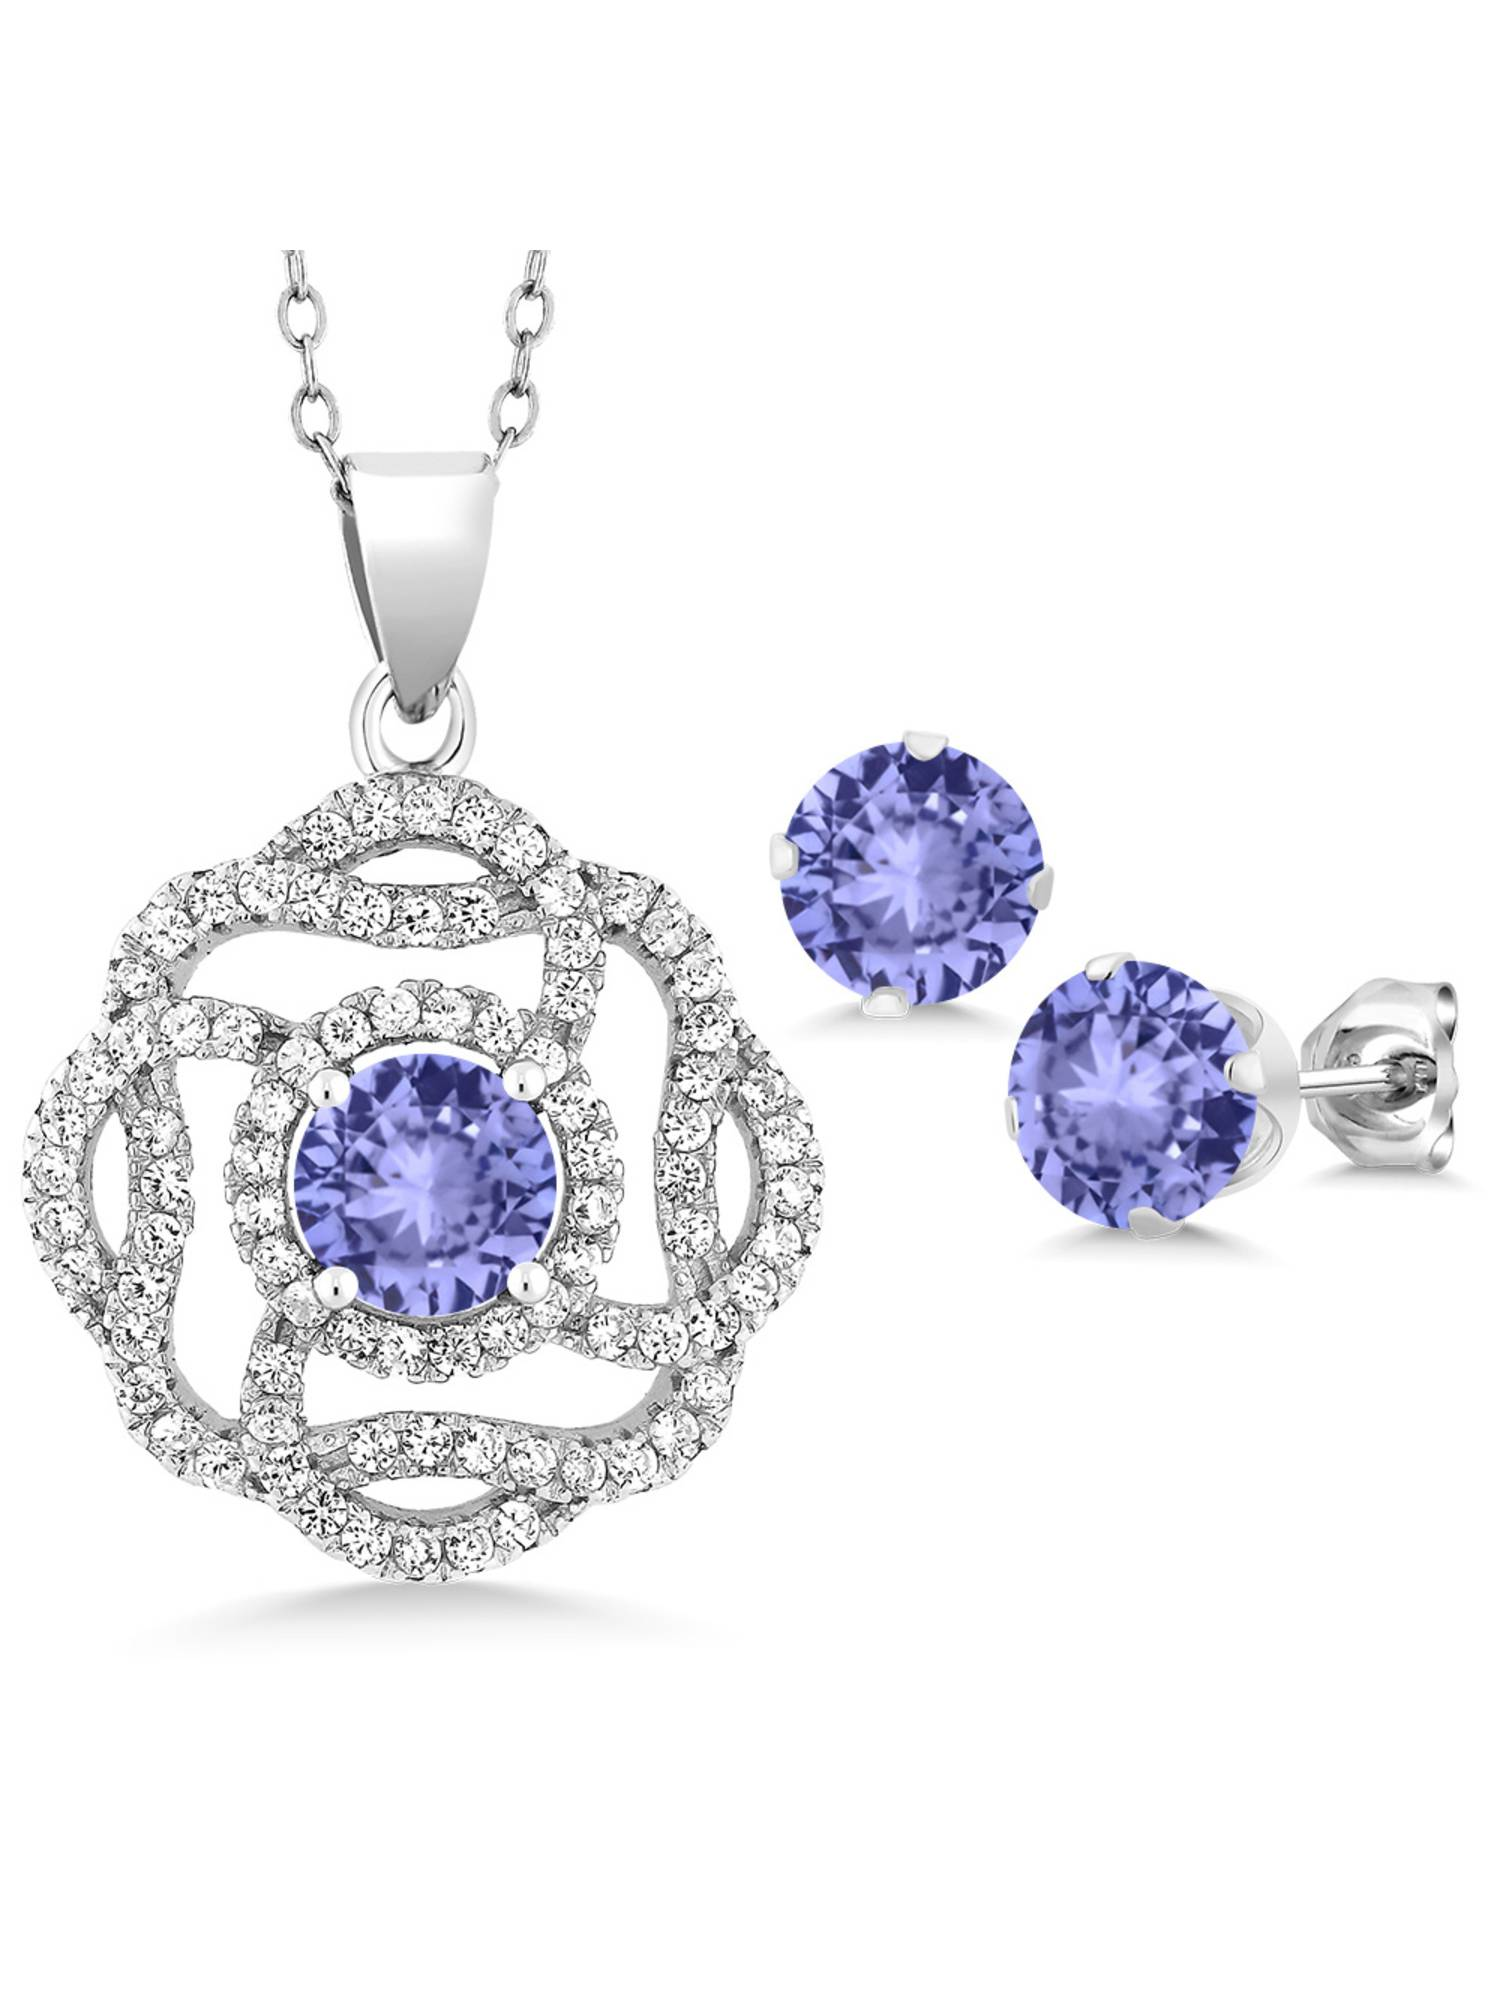 4.76 Ct Round Blue Tanzanite 925 Sterling Silver Pendant Earrings Set by